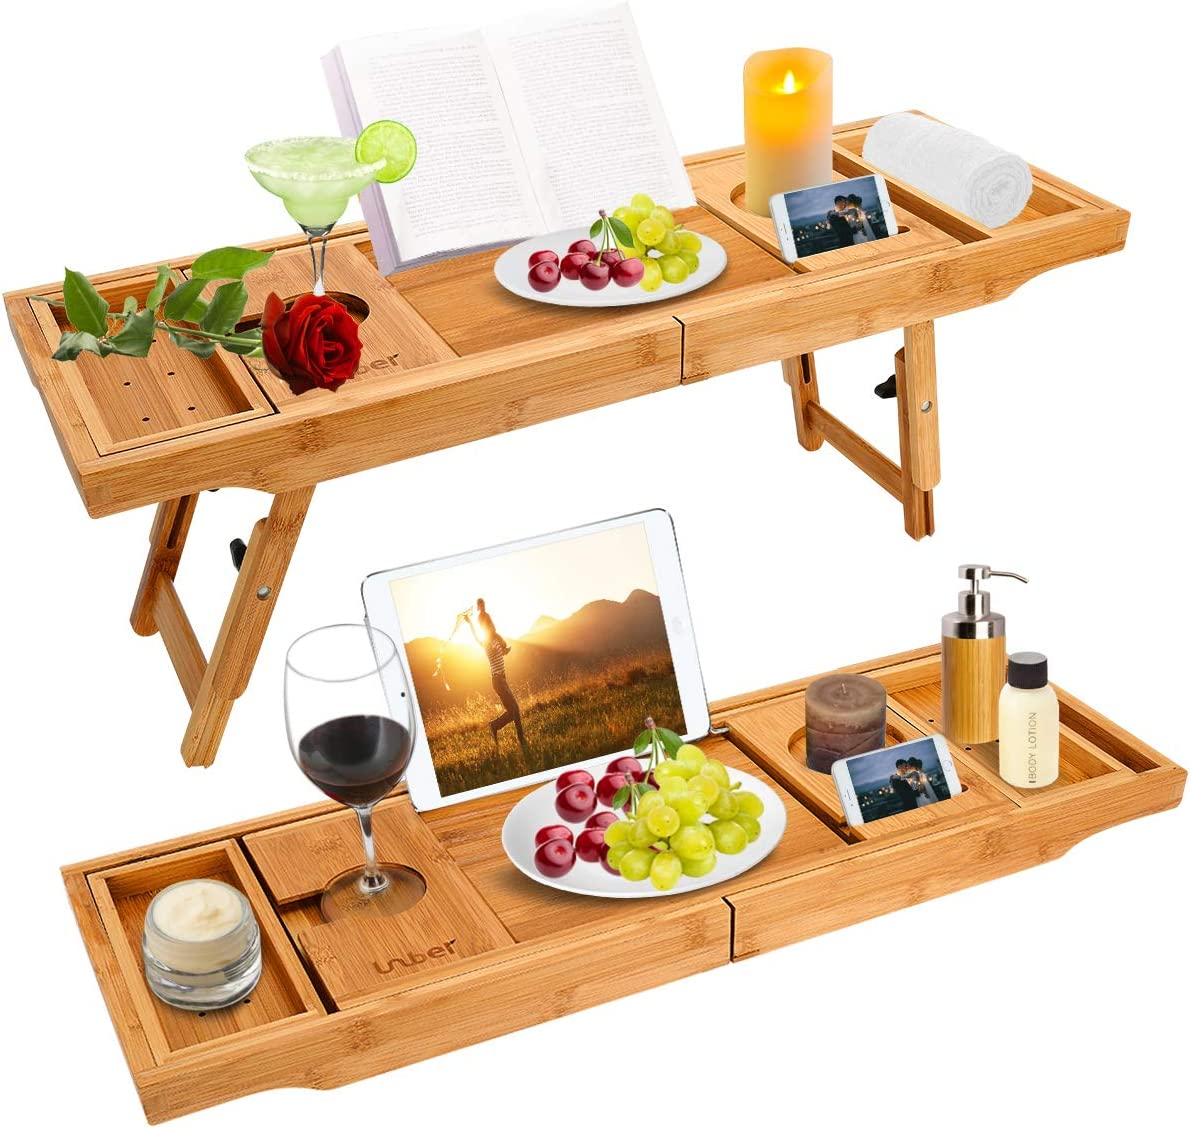 Bathtub Caddy Tray Bath Table with Extending Sides, Bamboo Bath Tub Trays Tablet with Wine and Book Holder , Cell phone Tray and Wine Glass Holder